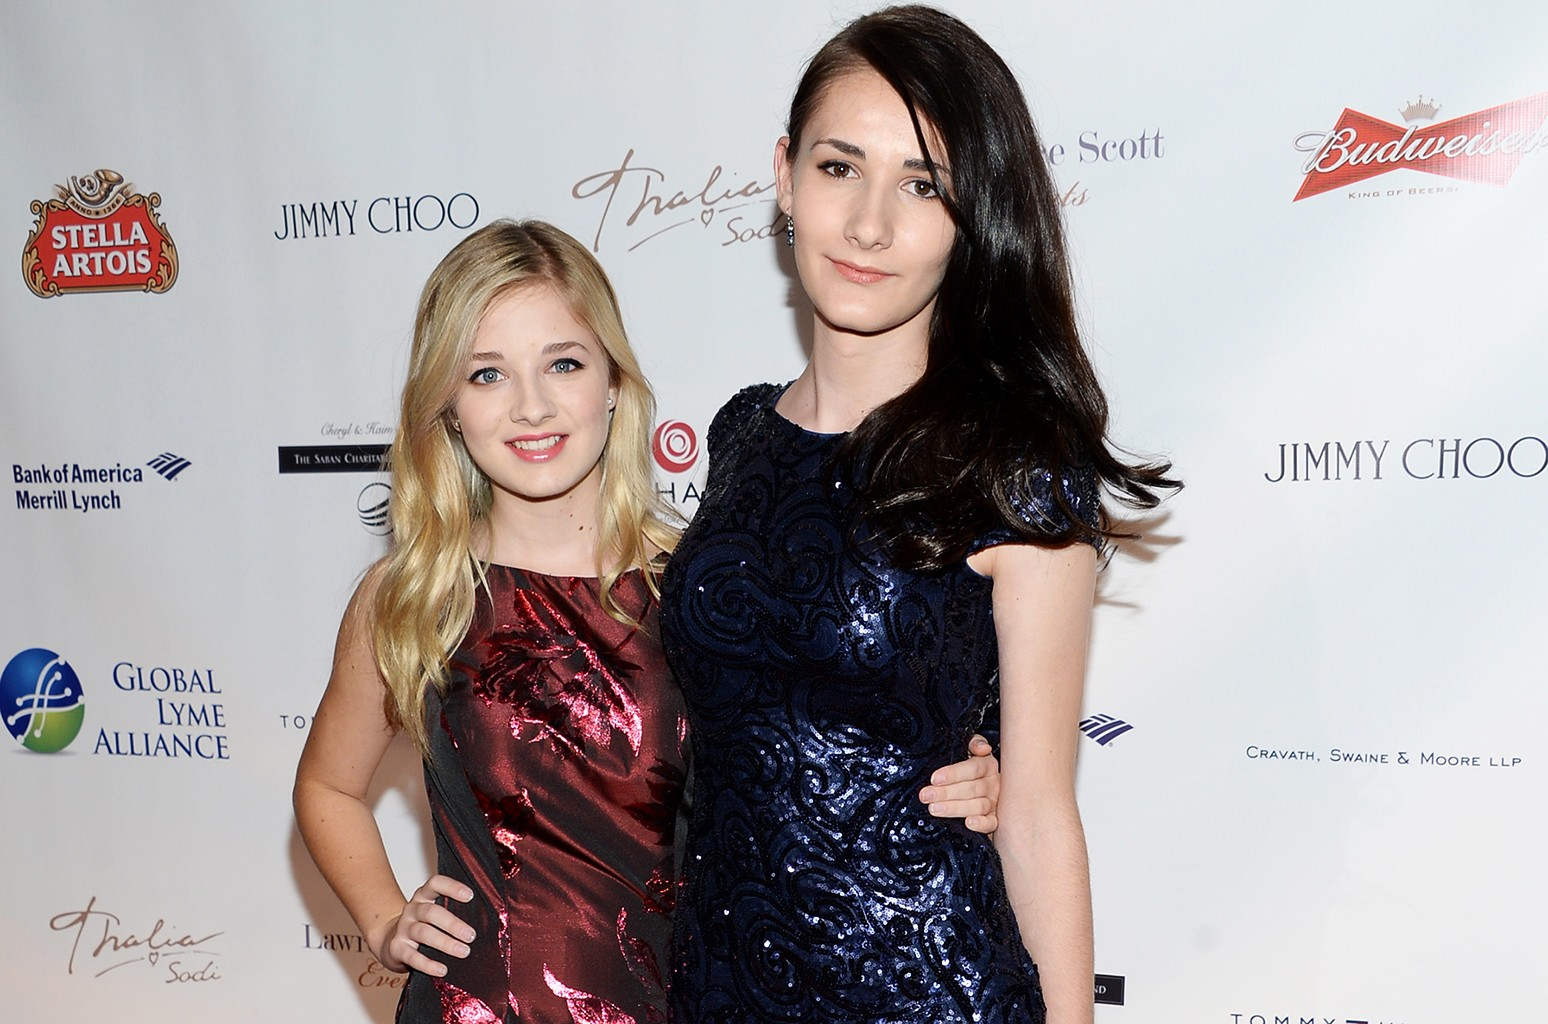 Jackie Evancho and Juliet Evancho attend the Global Lyme Alliance Inaugural Gala at Cipriani 42nd Street on Oct. 8, 2015 in New York City.